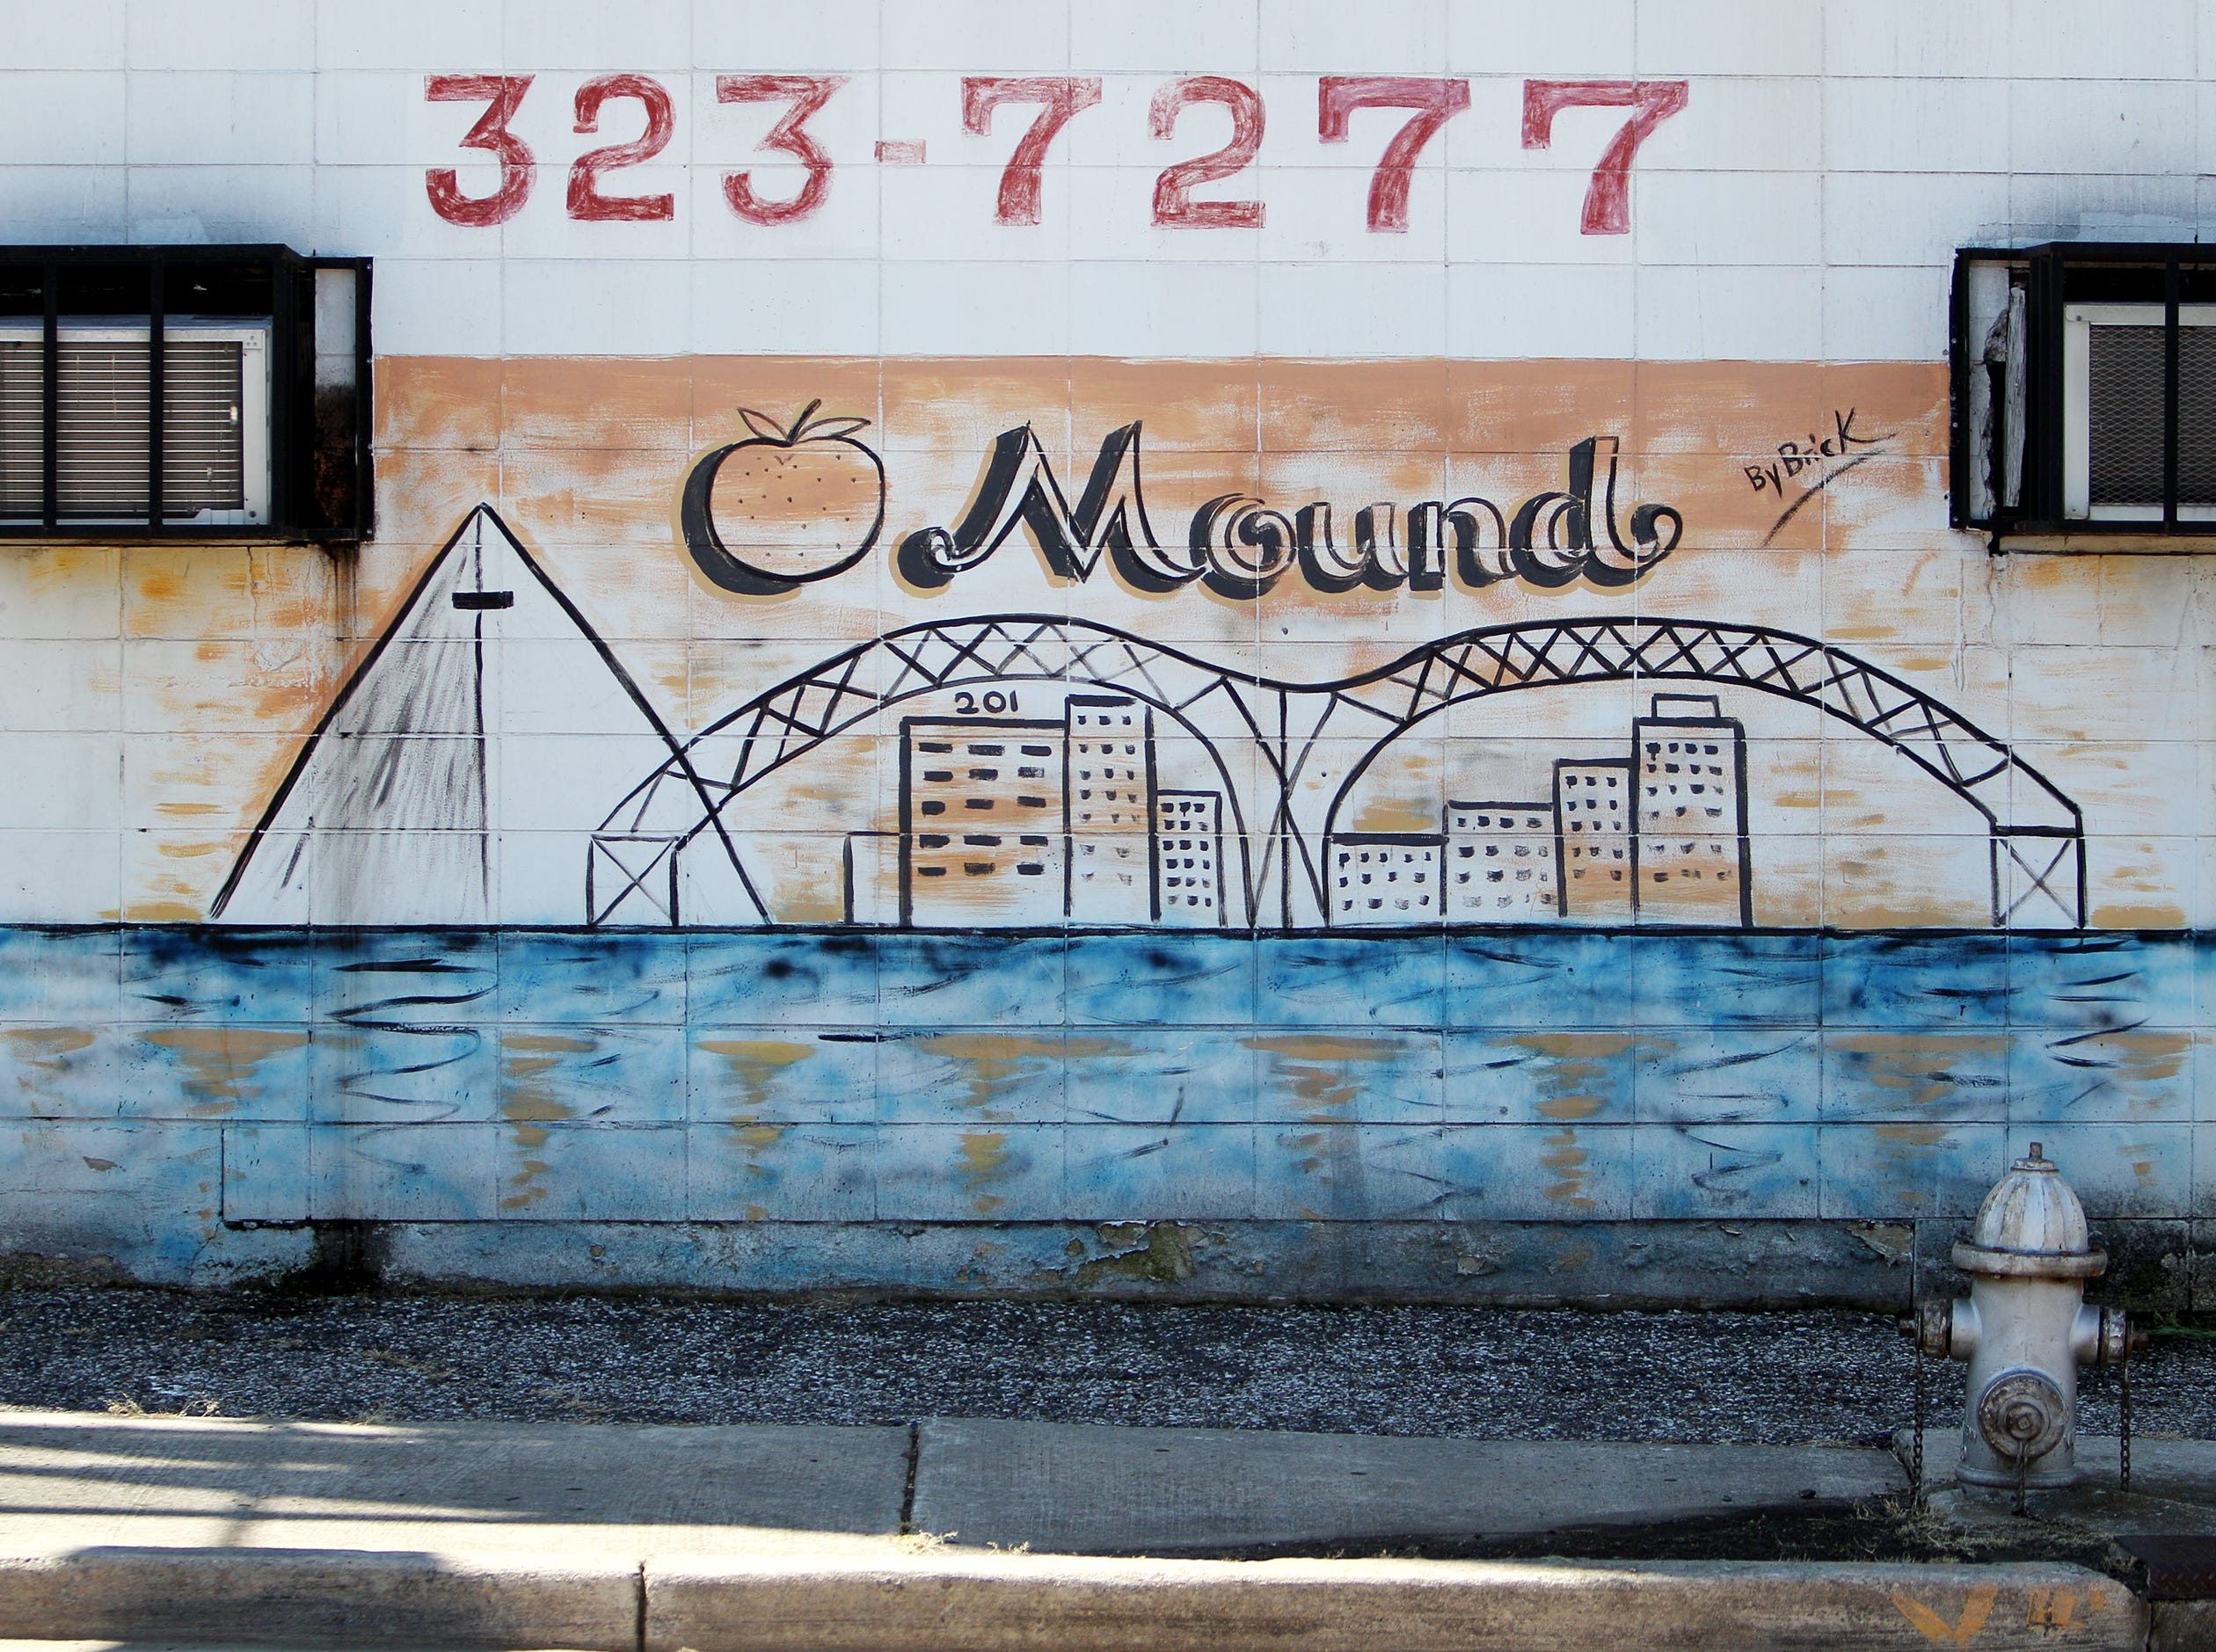 August 13, 2015 - This mural is located at the corner of Airways and Enterprise in Orange Mound. (Mike Brown/The Commercial Appeal)